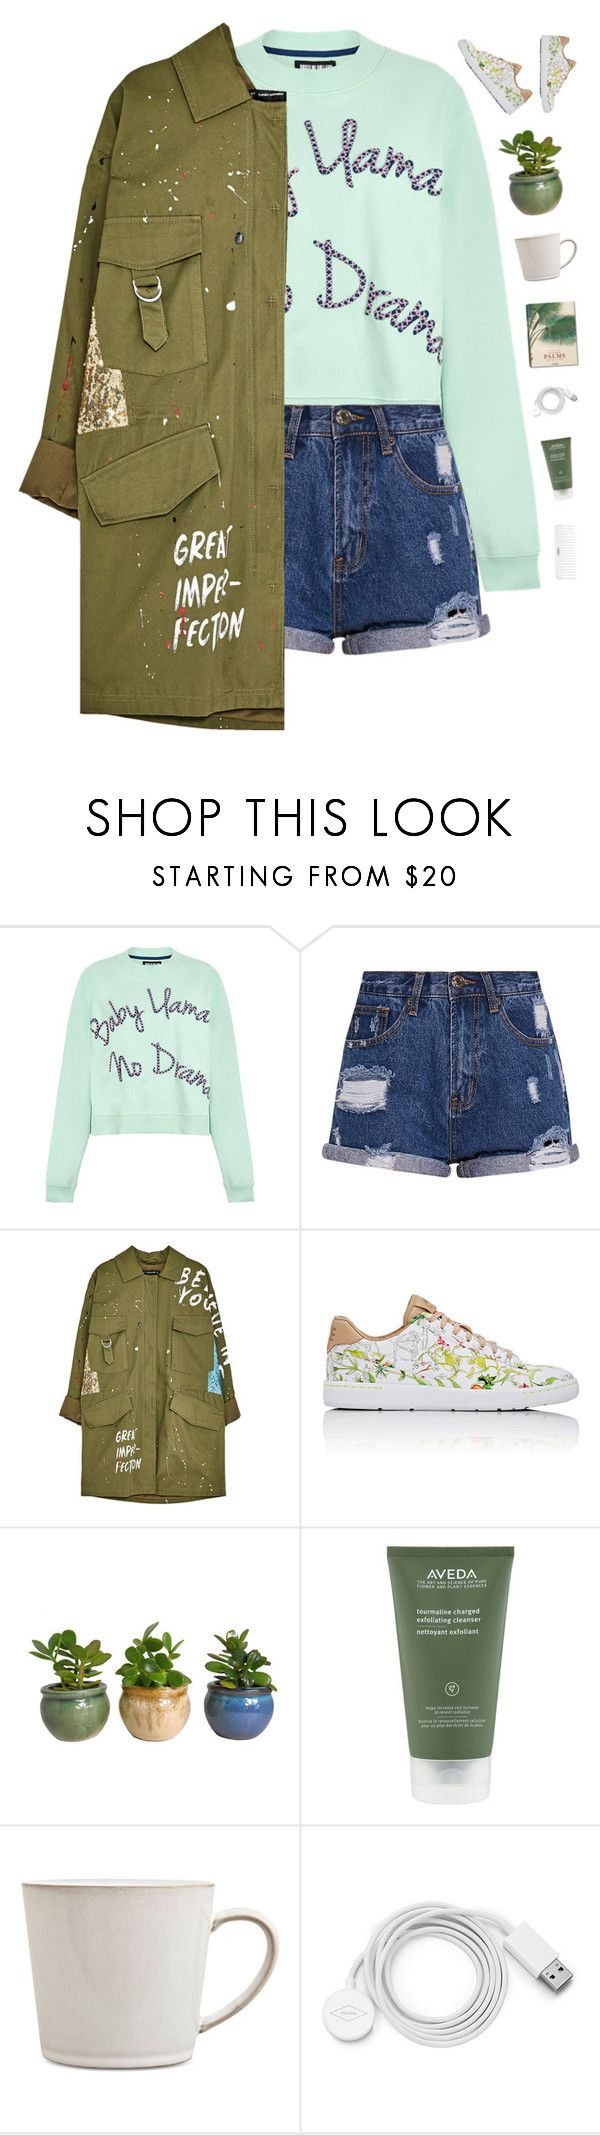 """""""All I want is you"""" by genesis129 on Polyvore featuring House of Holland, NIKE, Taschen, Aveda, Denby, FOSSIL, Conair and vintage"""